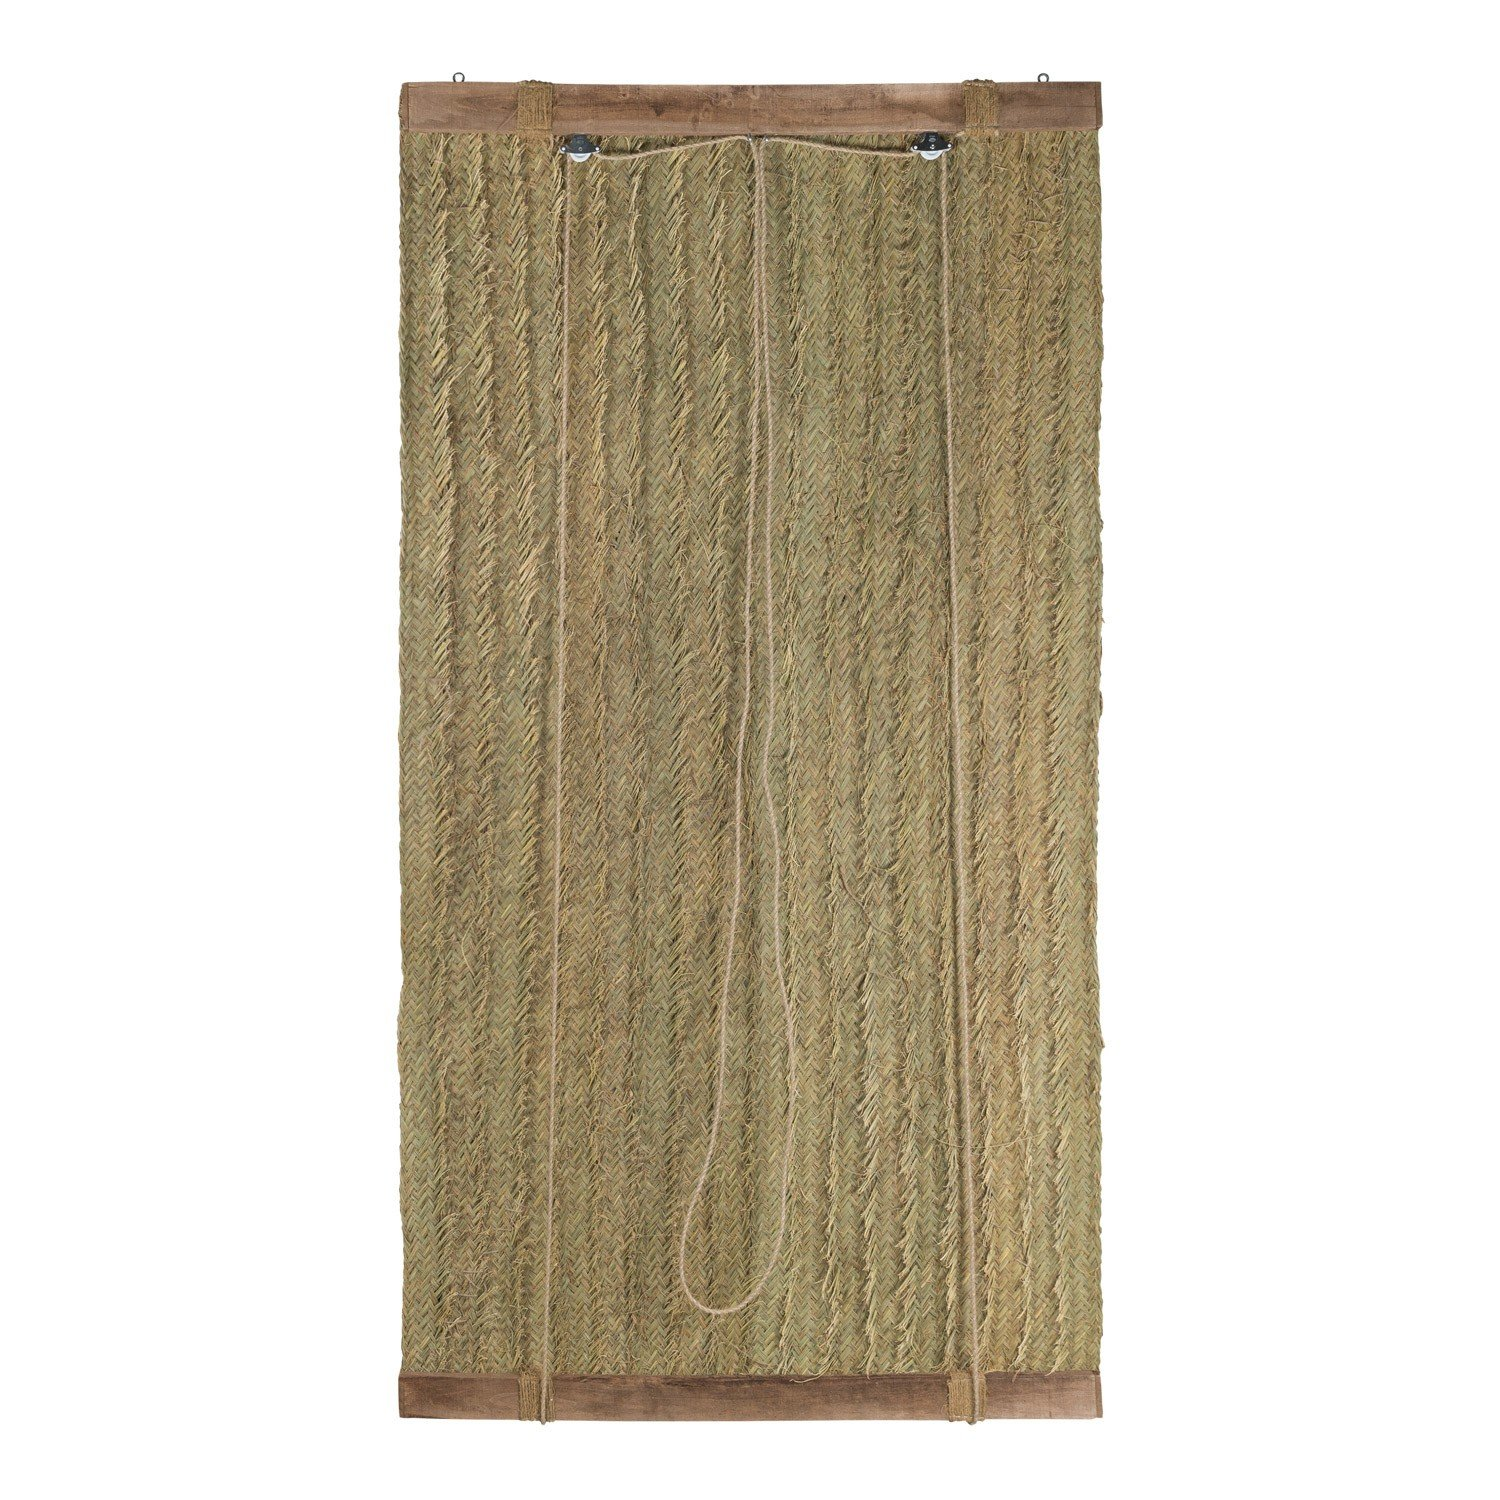 Abu Blinds, gallery image 1